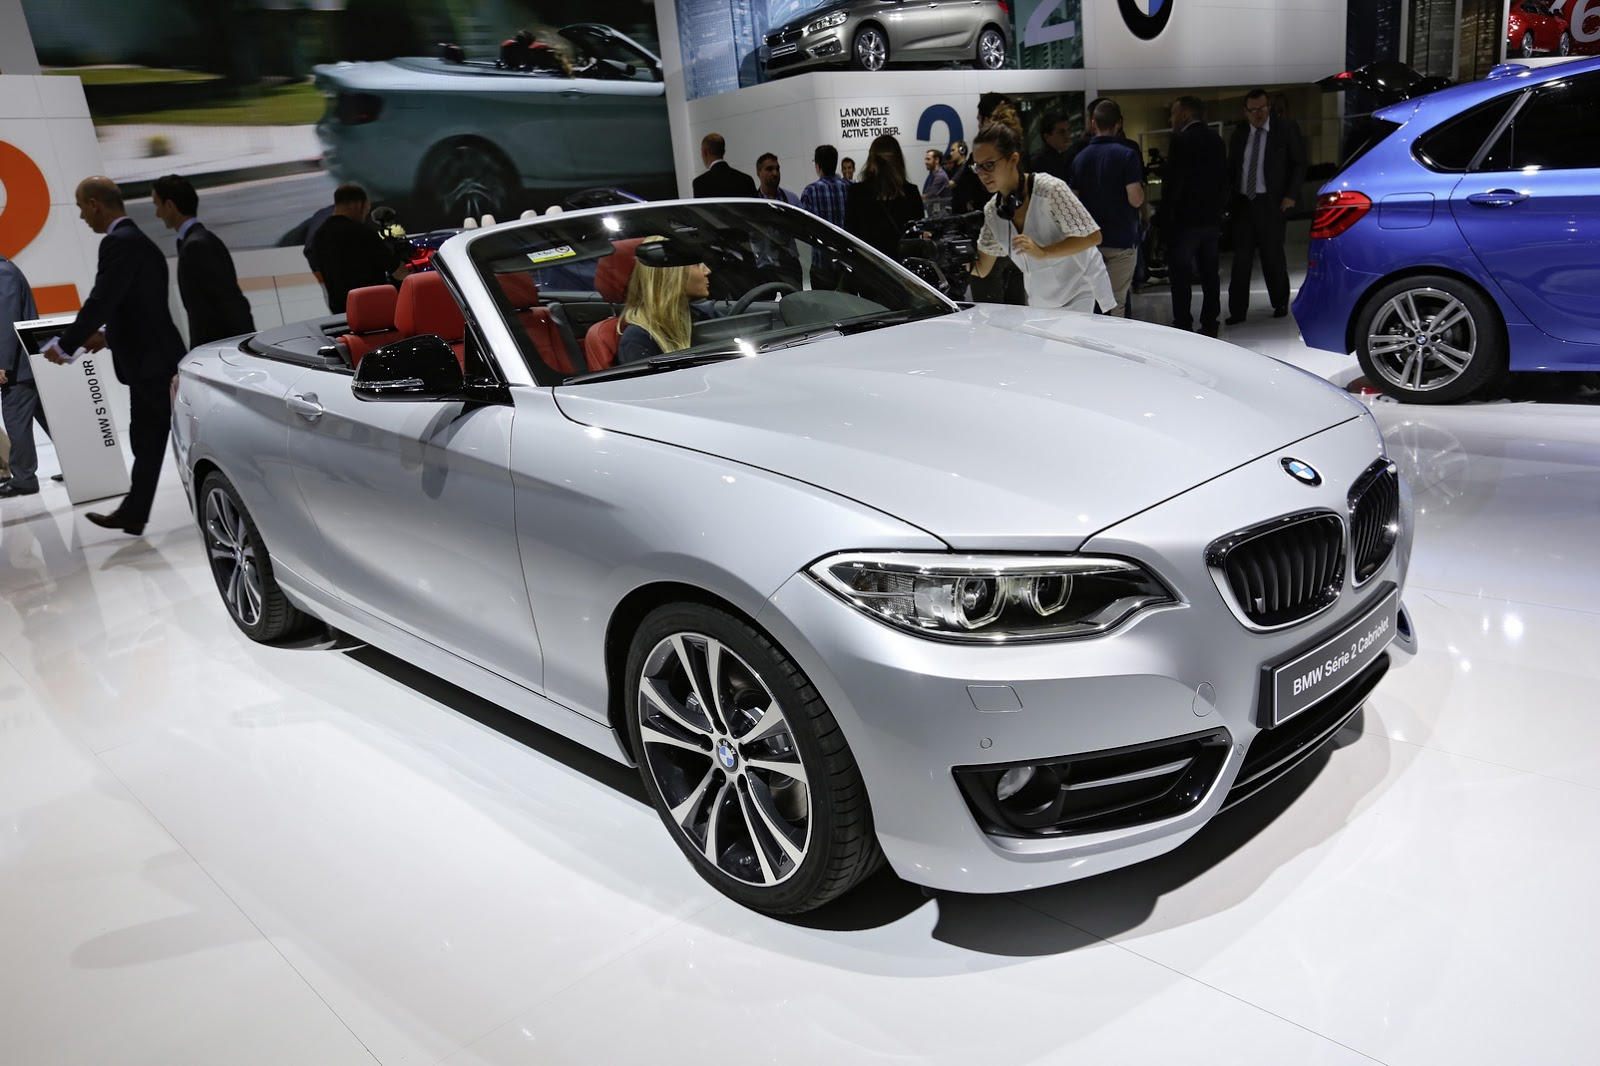 yeni bmw 2 serisi cabrio 39 nun lansman paris 39 te yap ld turkeycarblog. Black Bedroom Furniture Sets. Home Design Ideas